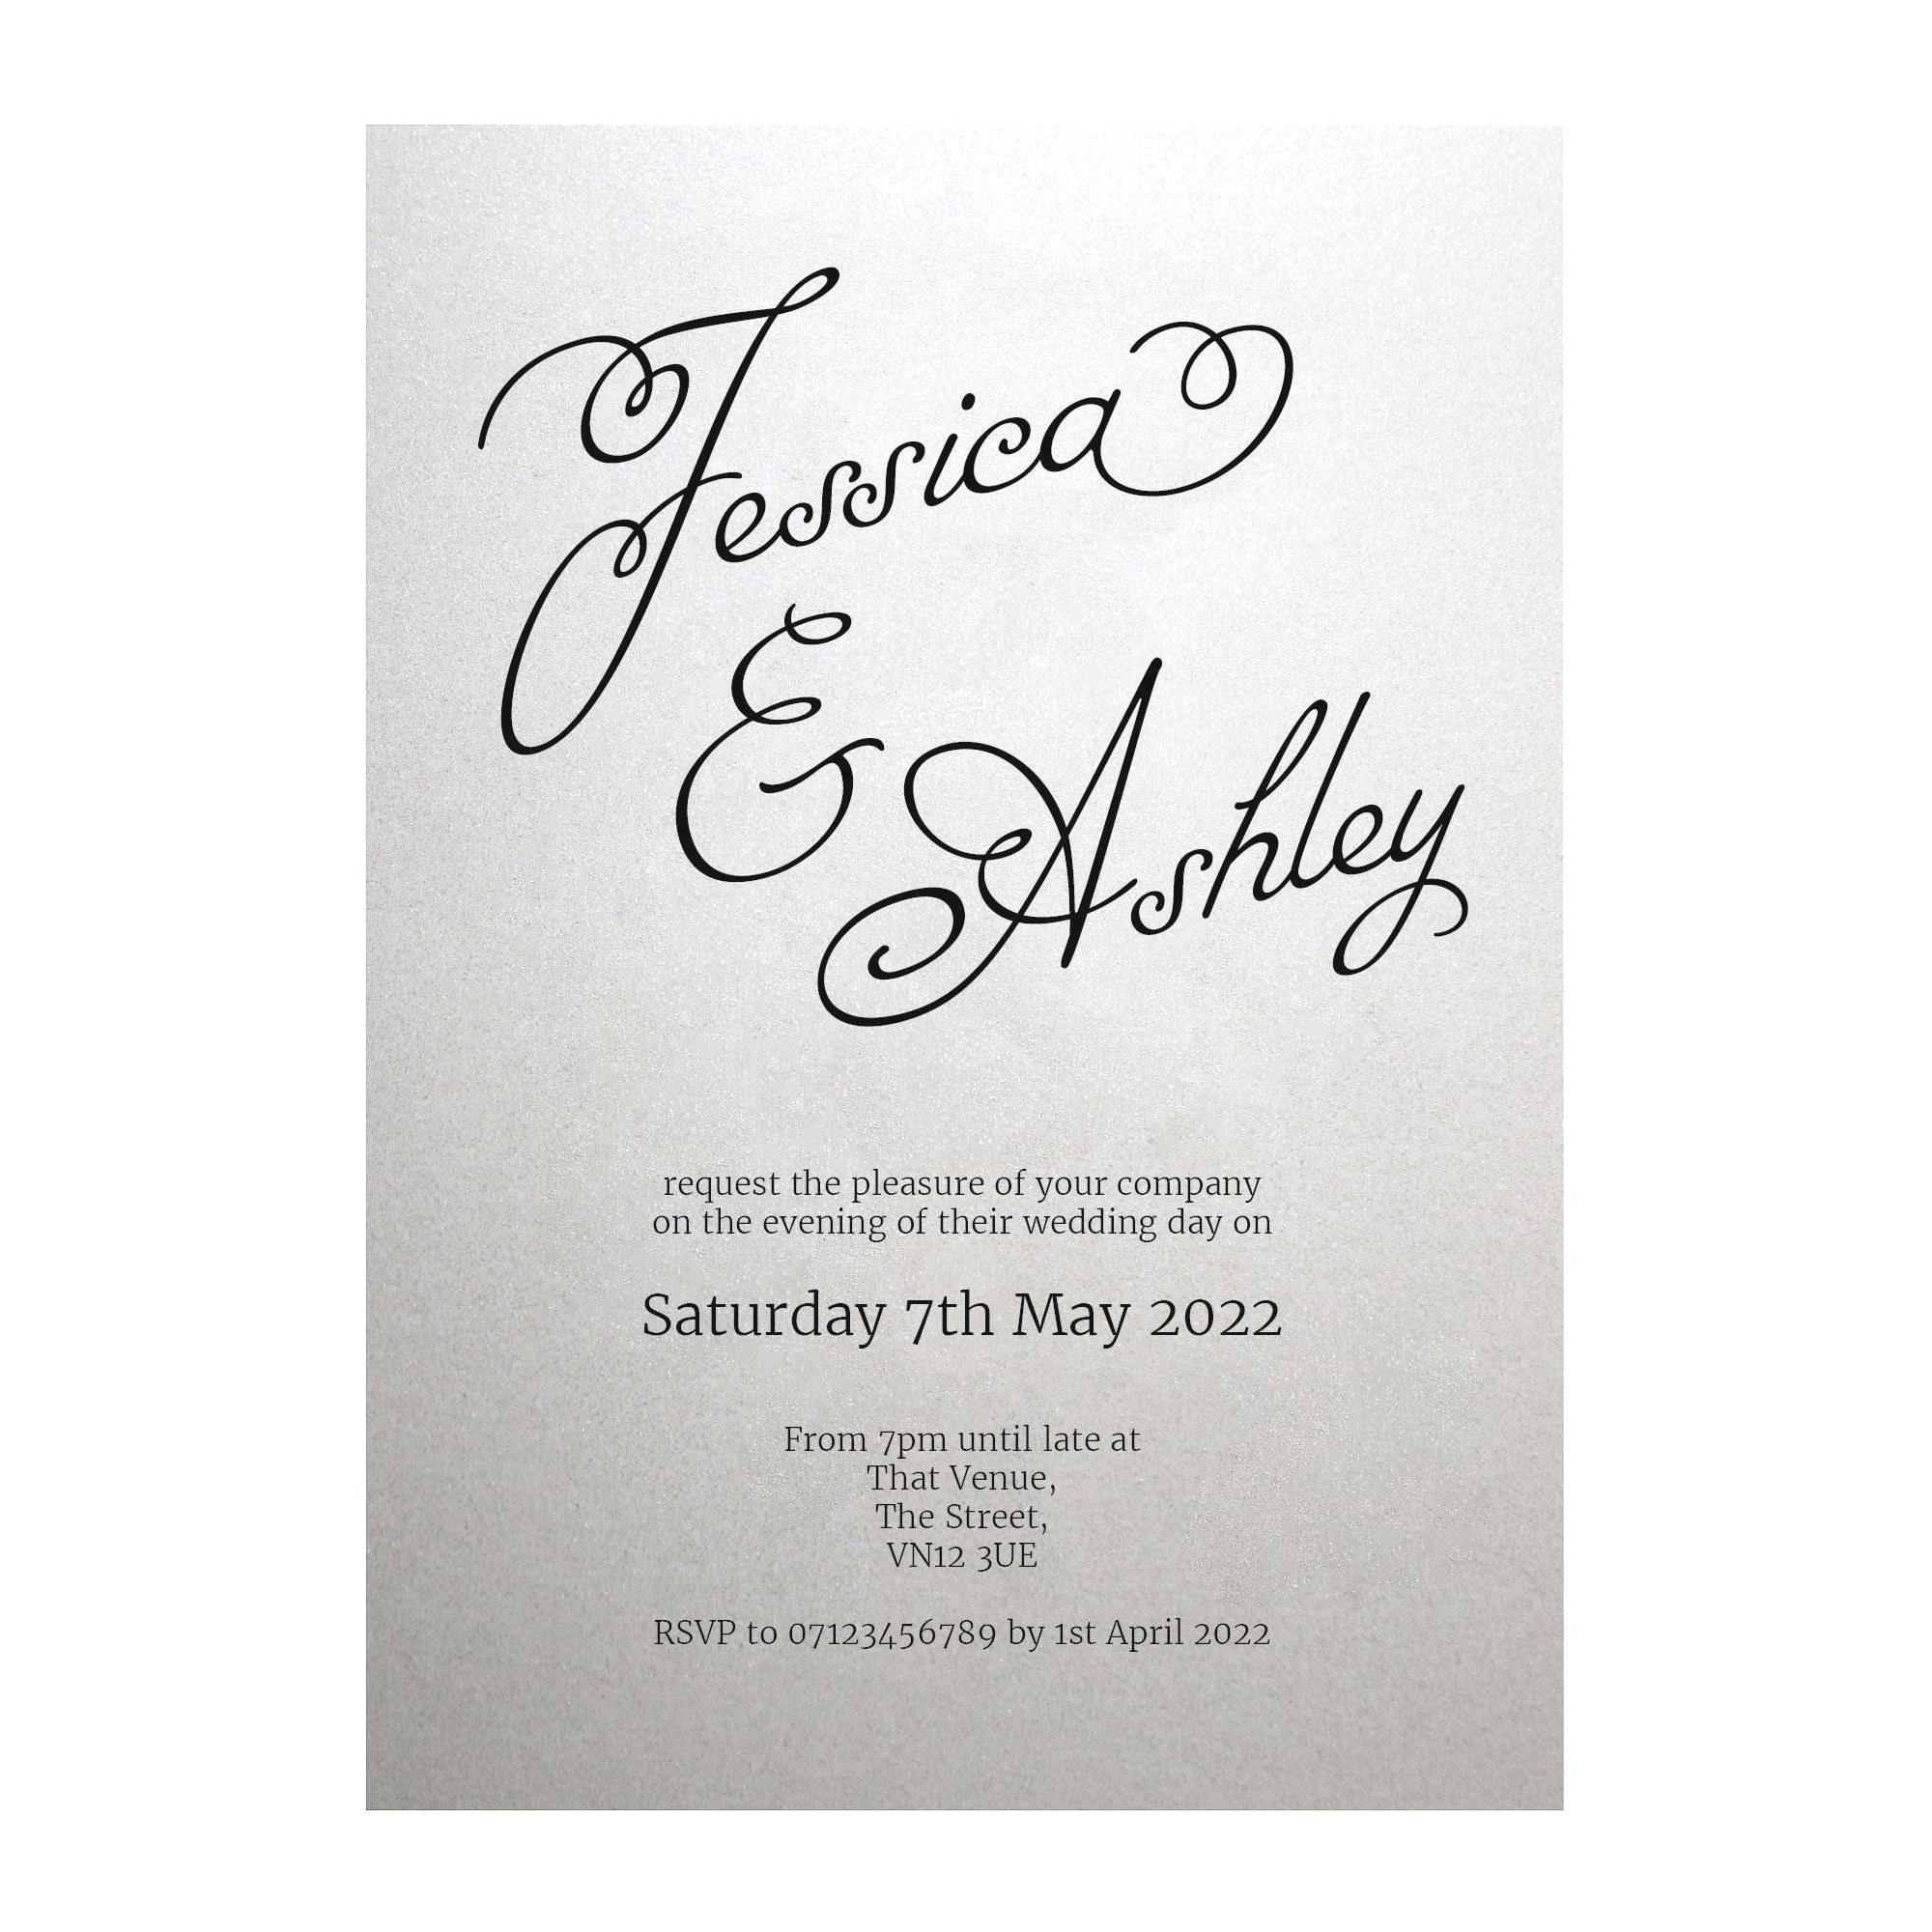 Shimmer Arctic White Classic Swirled Name Reception Invitations